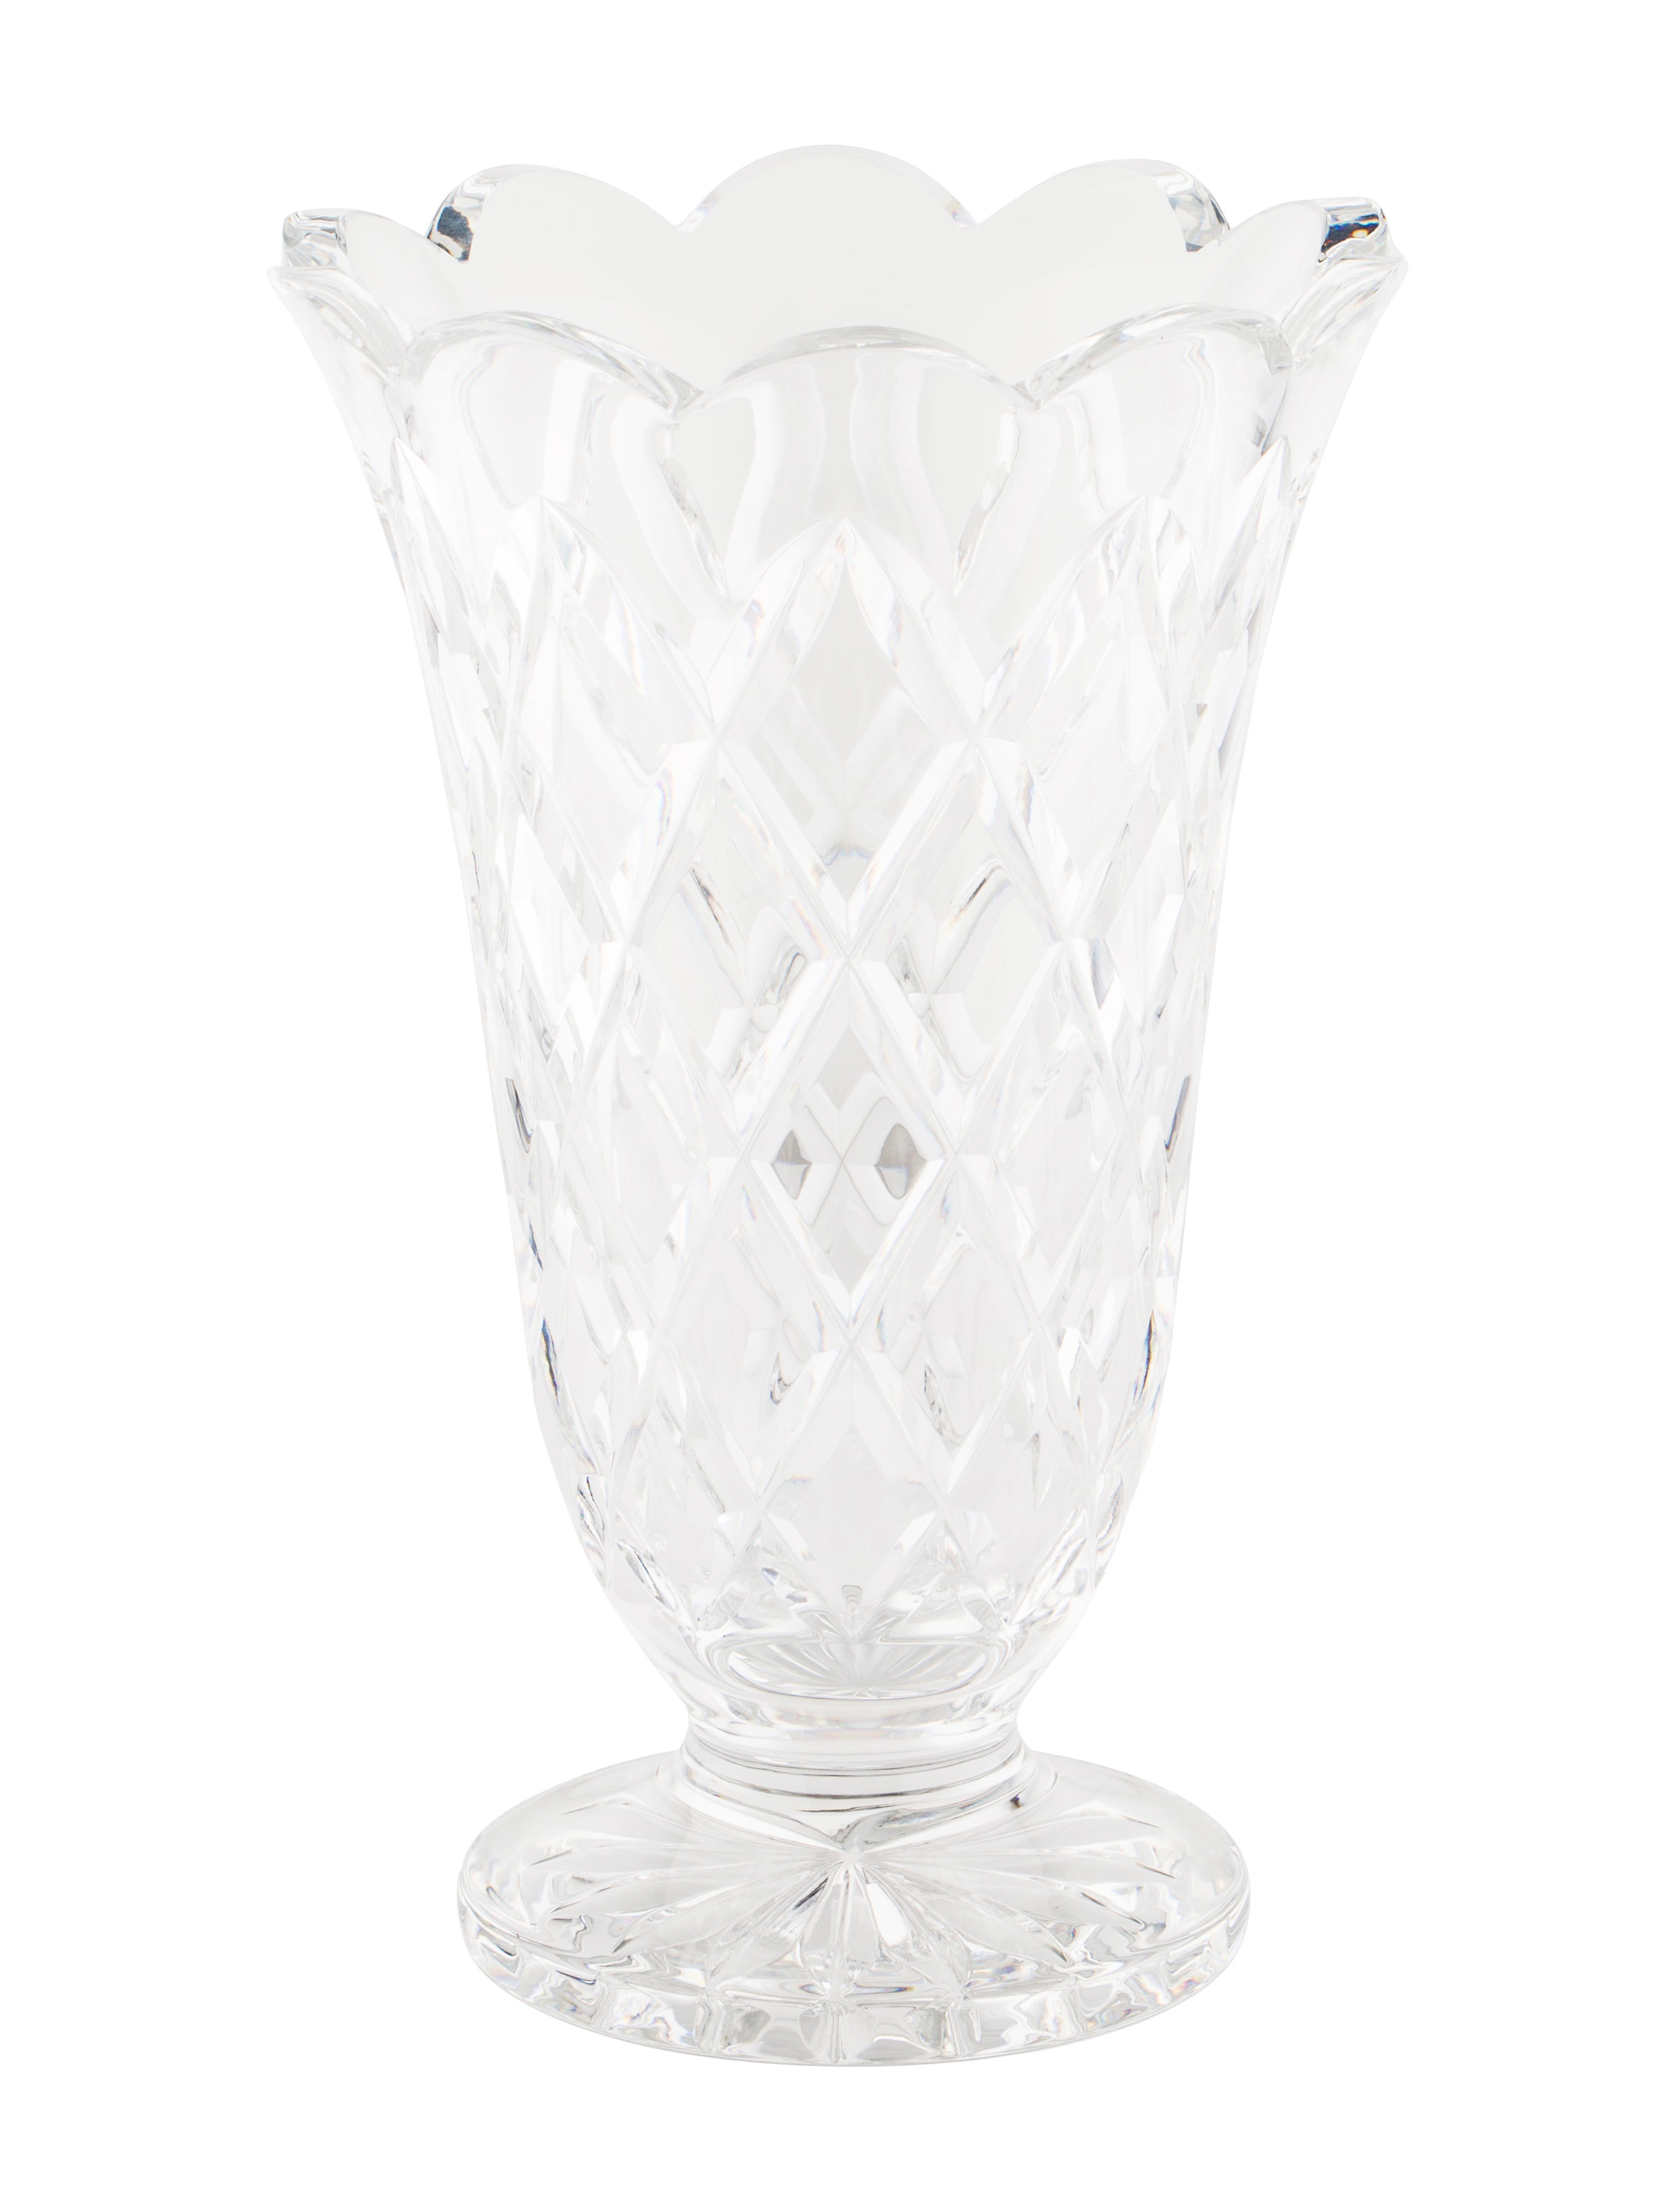 Waterford crystal footed vase decor and accessories Crystal home decor